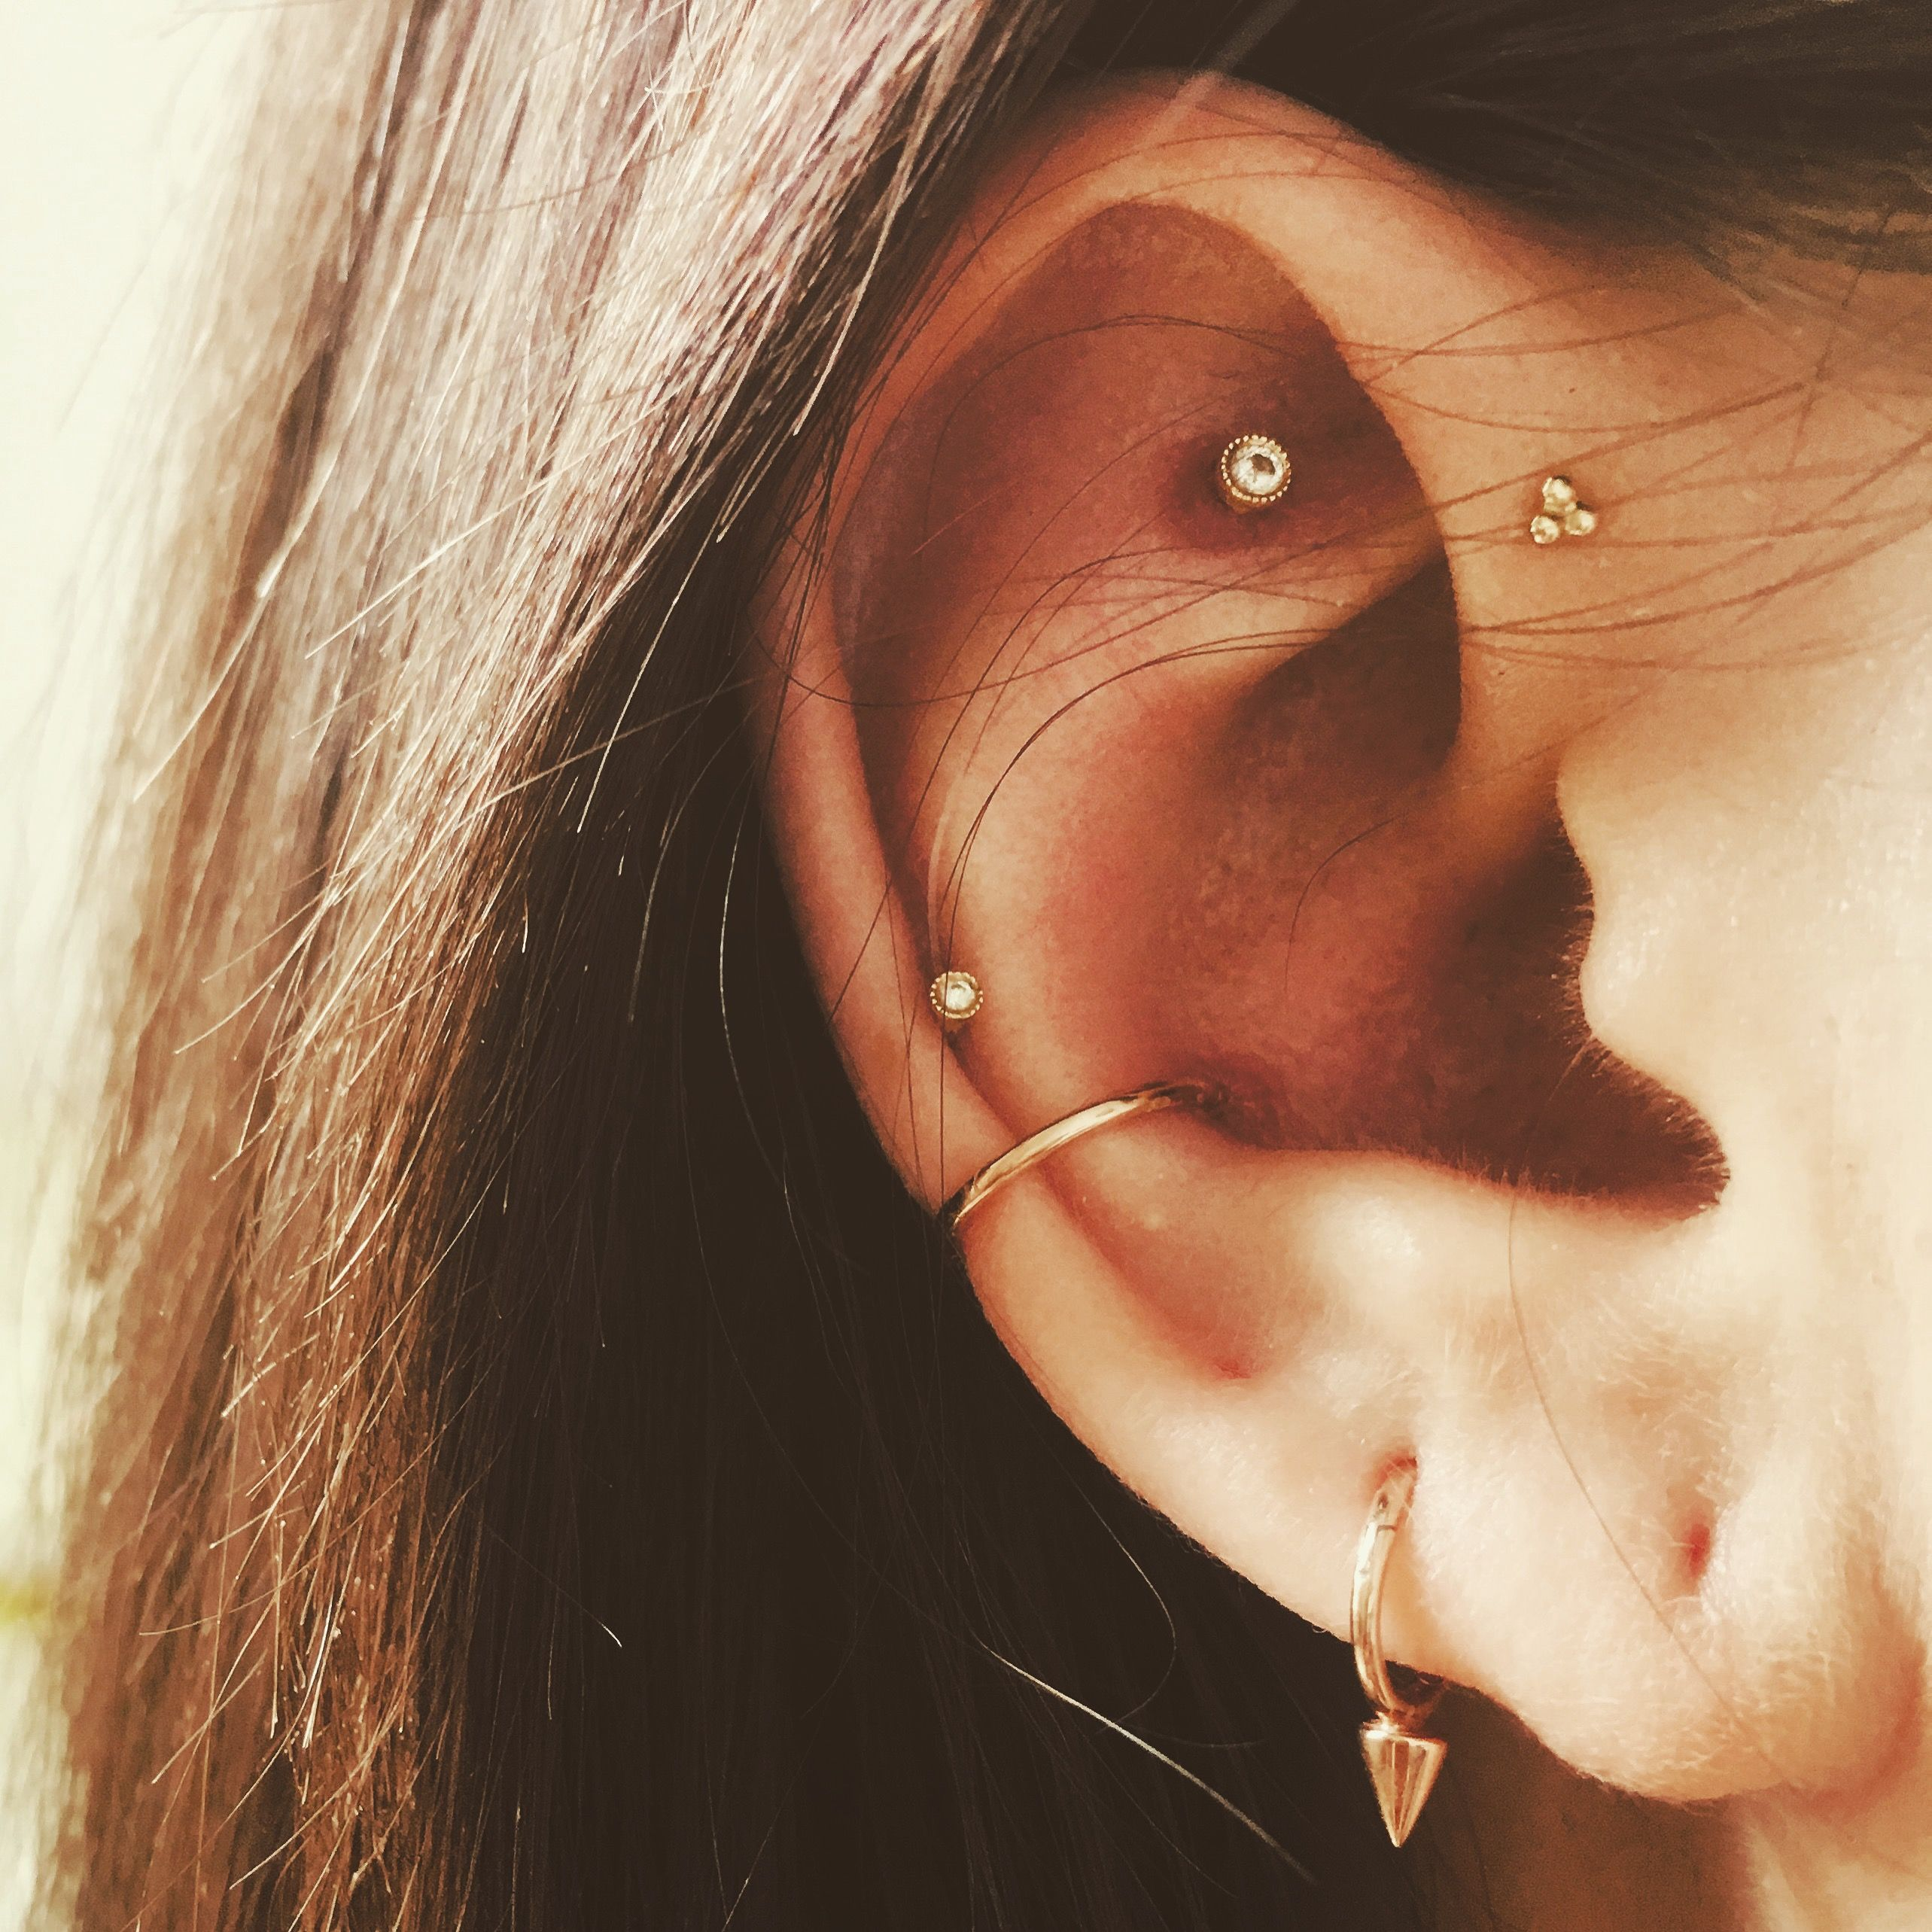 ear piercing rook - photo #40